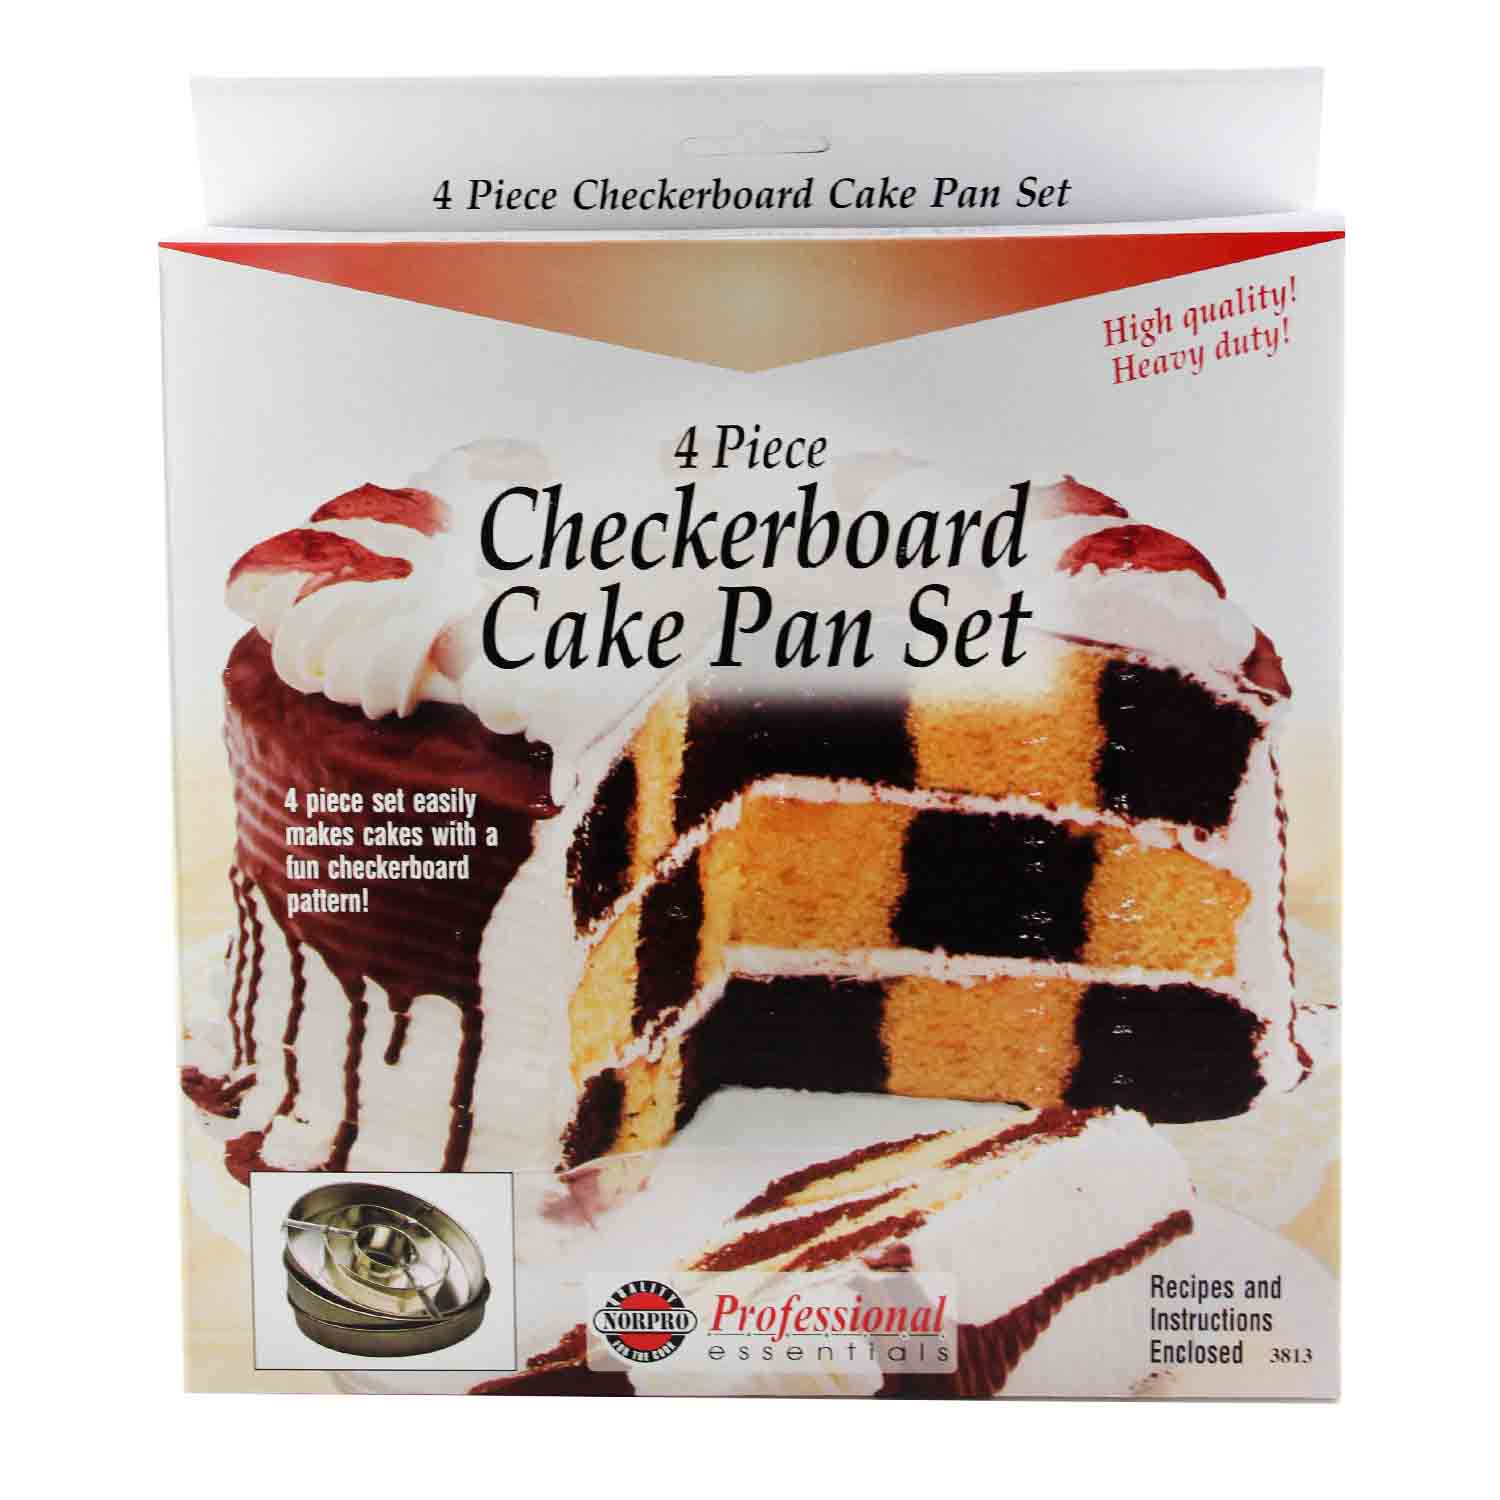 Checkerboard Cake Pan Set